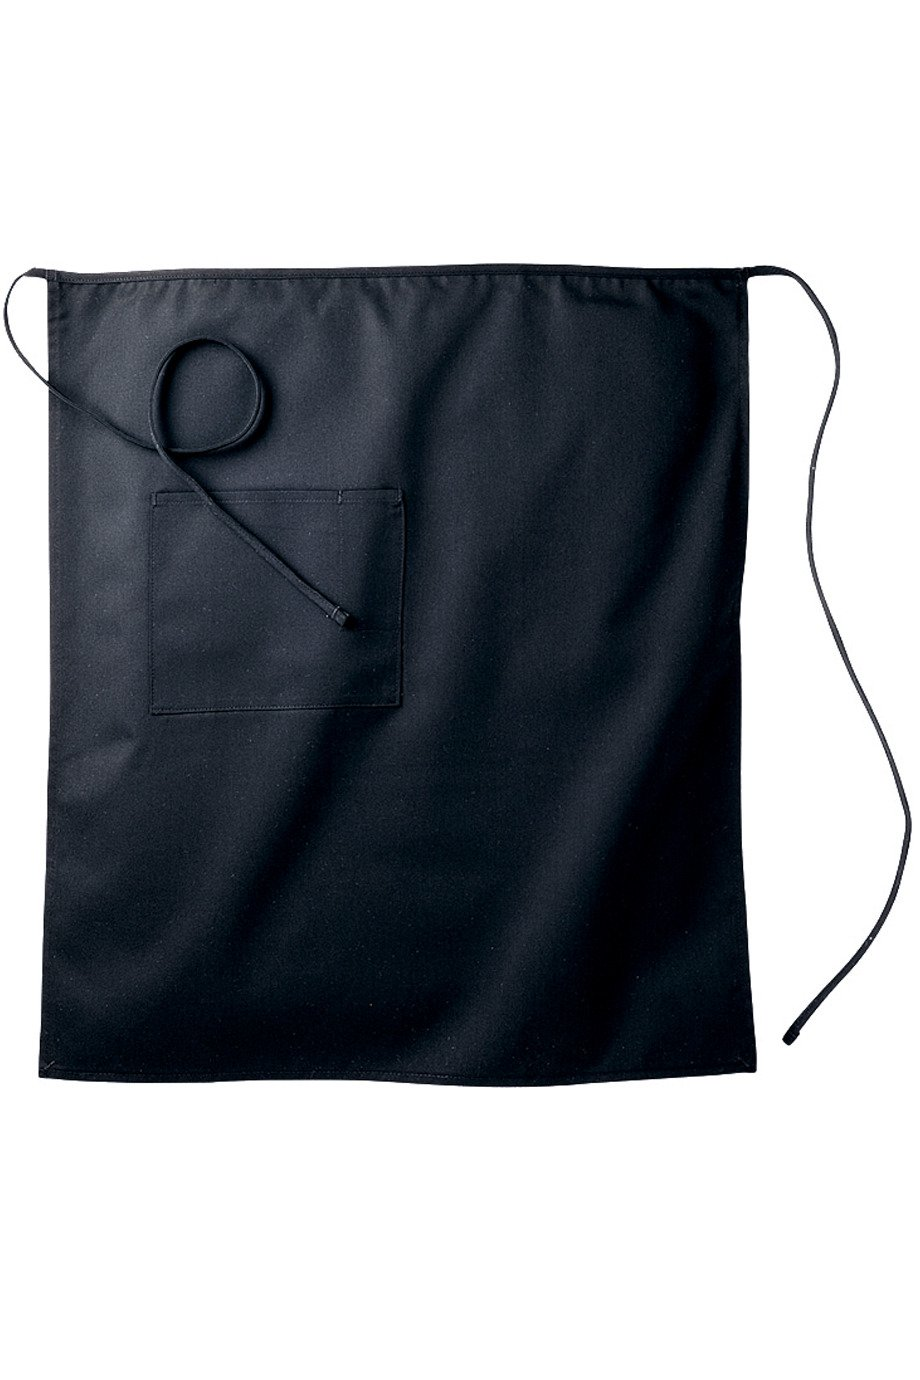 Long Bistro Apron (1 Pocket)